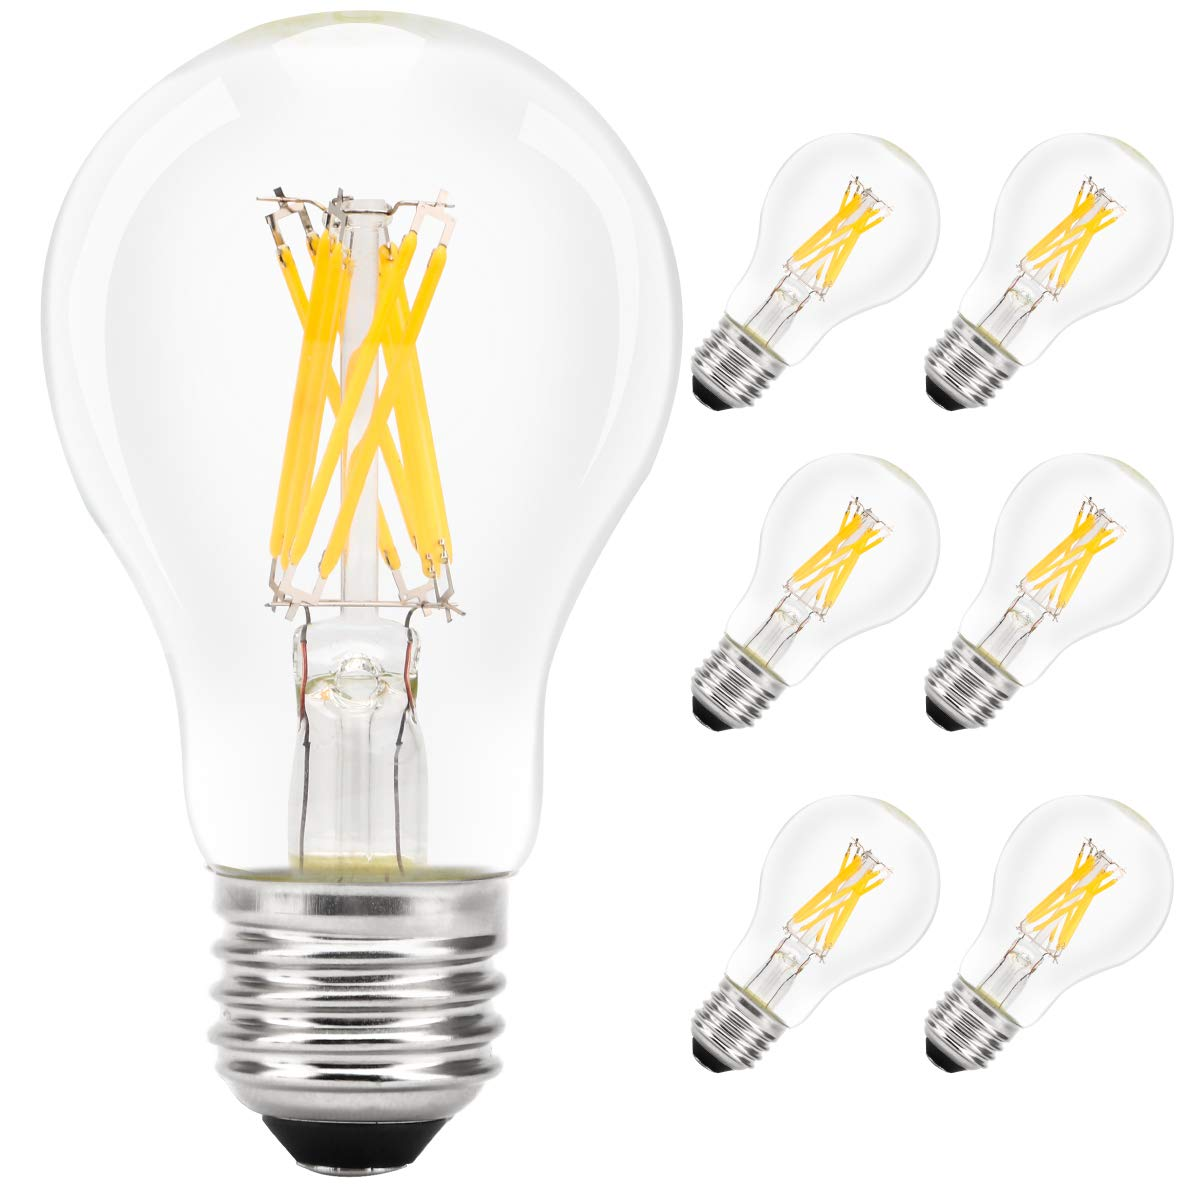 IMIGY E26 Base LED Filament Bulb, Classic A19 Light Bulbs, 8W Equivalent 60W, 800LM, Warm White 2700K, Filament Clear Glass, Non Dimmable Pack of 6